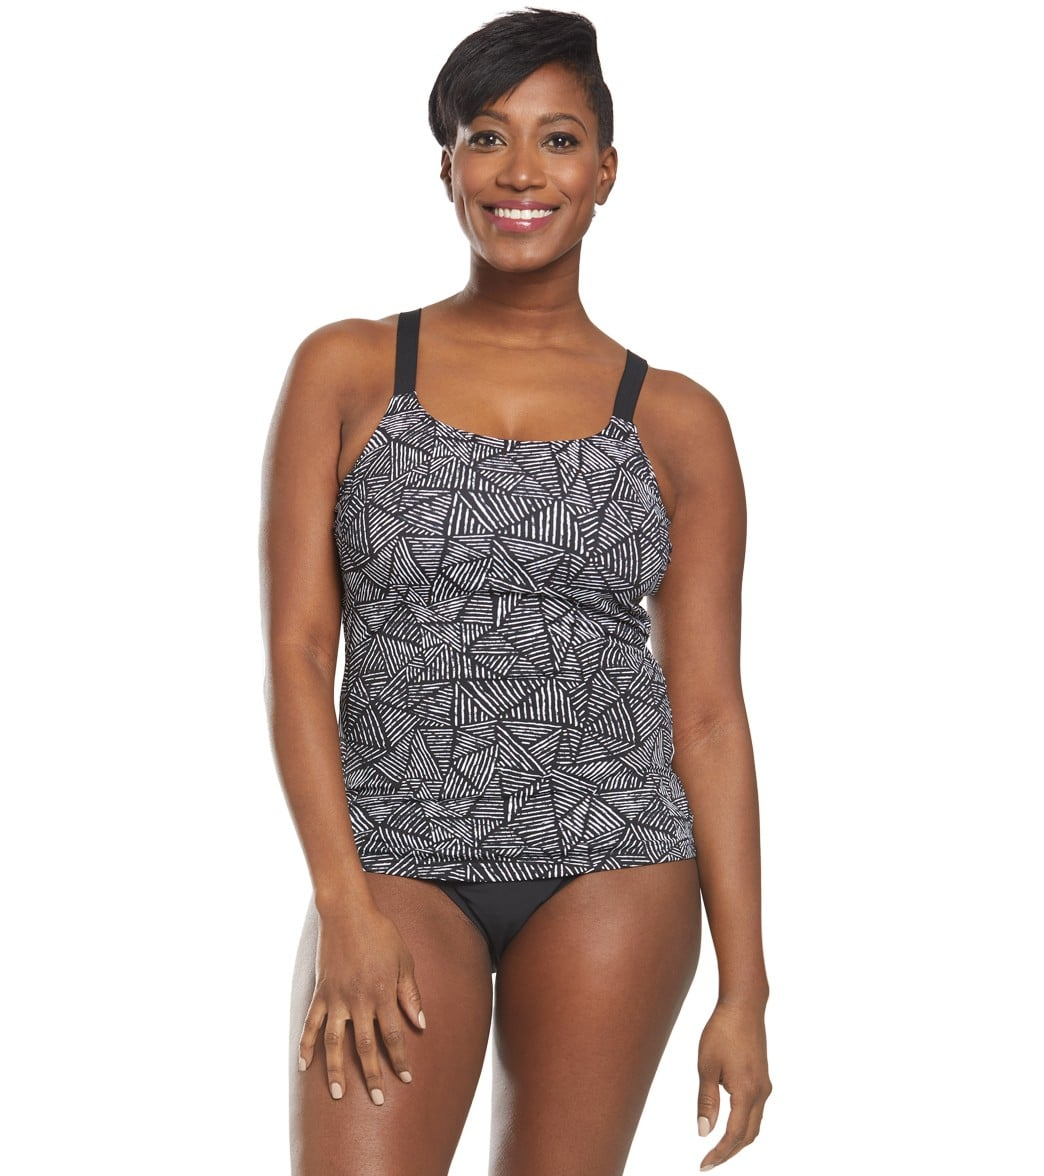 a75f8c86a934c Funkita Women's Black Widow Scoop Neck Tankini Top at SwimOutlet.com - Free  Shipping